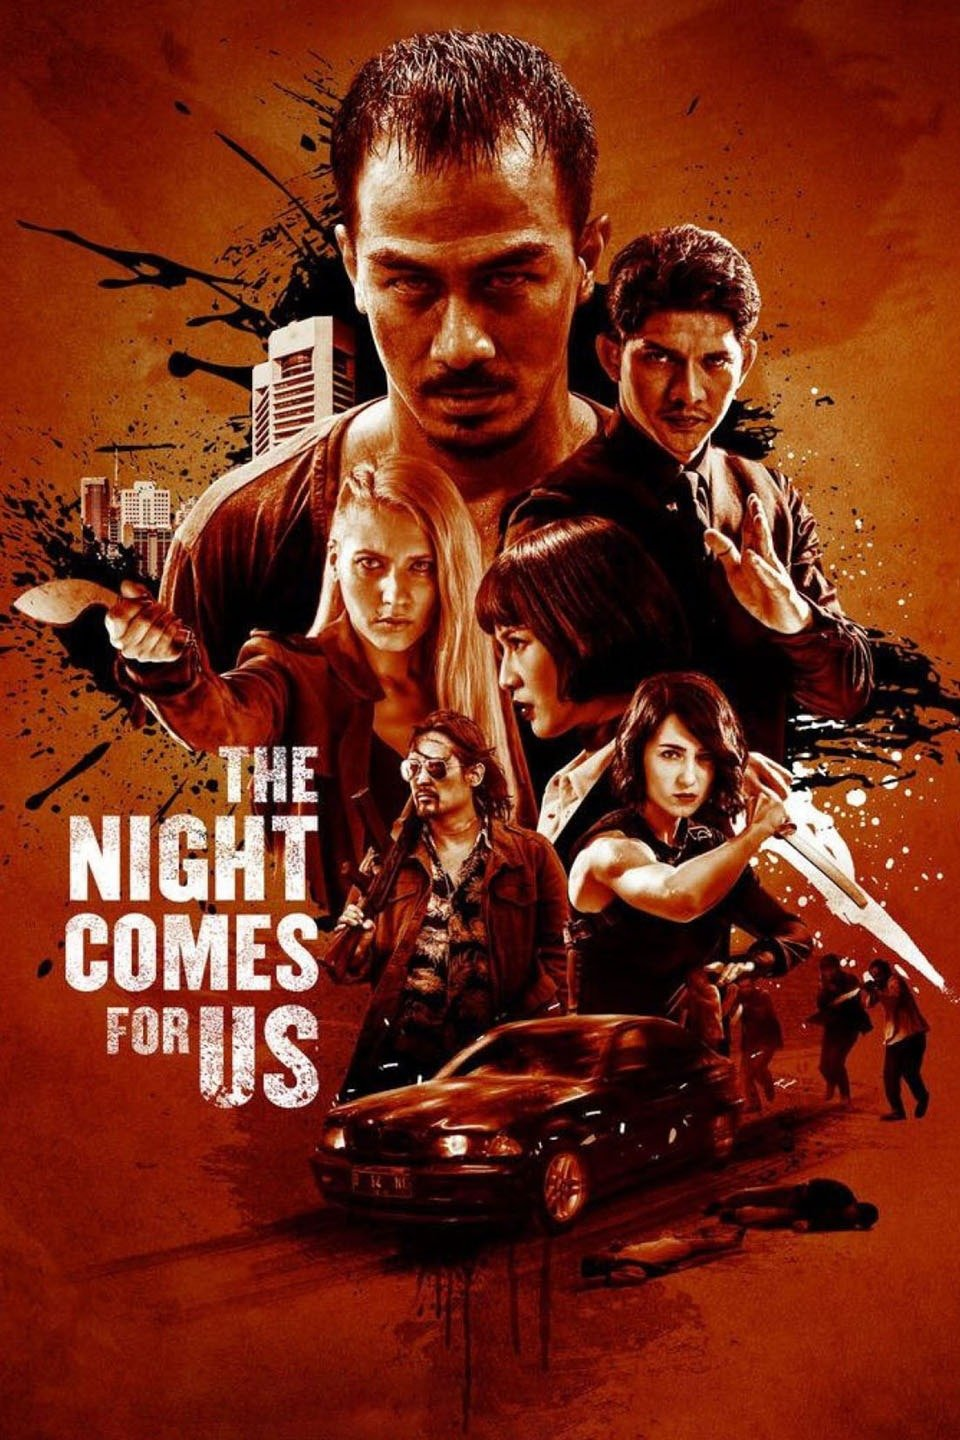 the night comes for us full movie download hd 720p 950mb